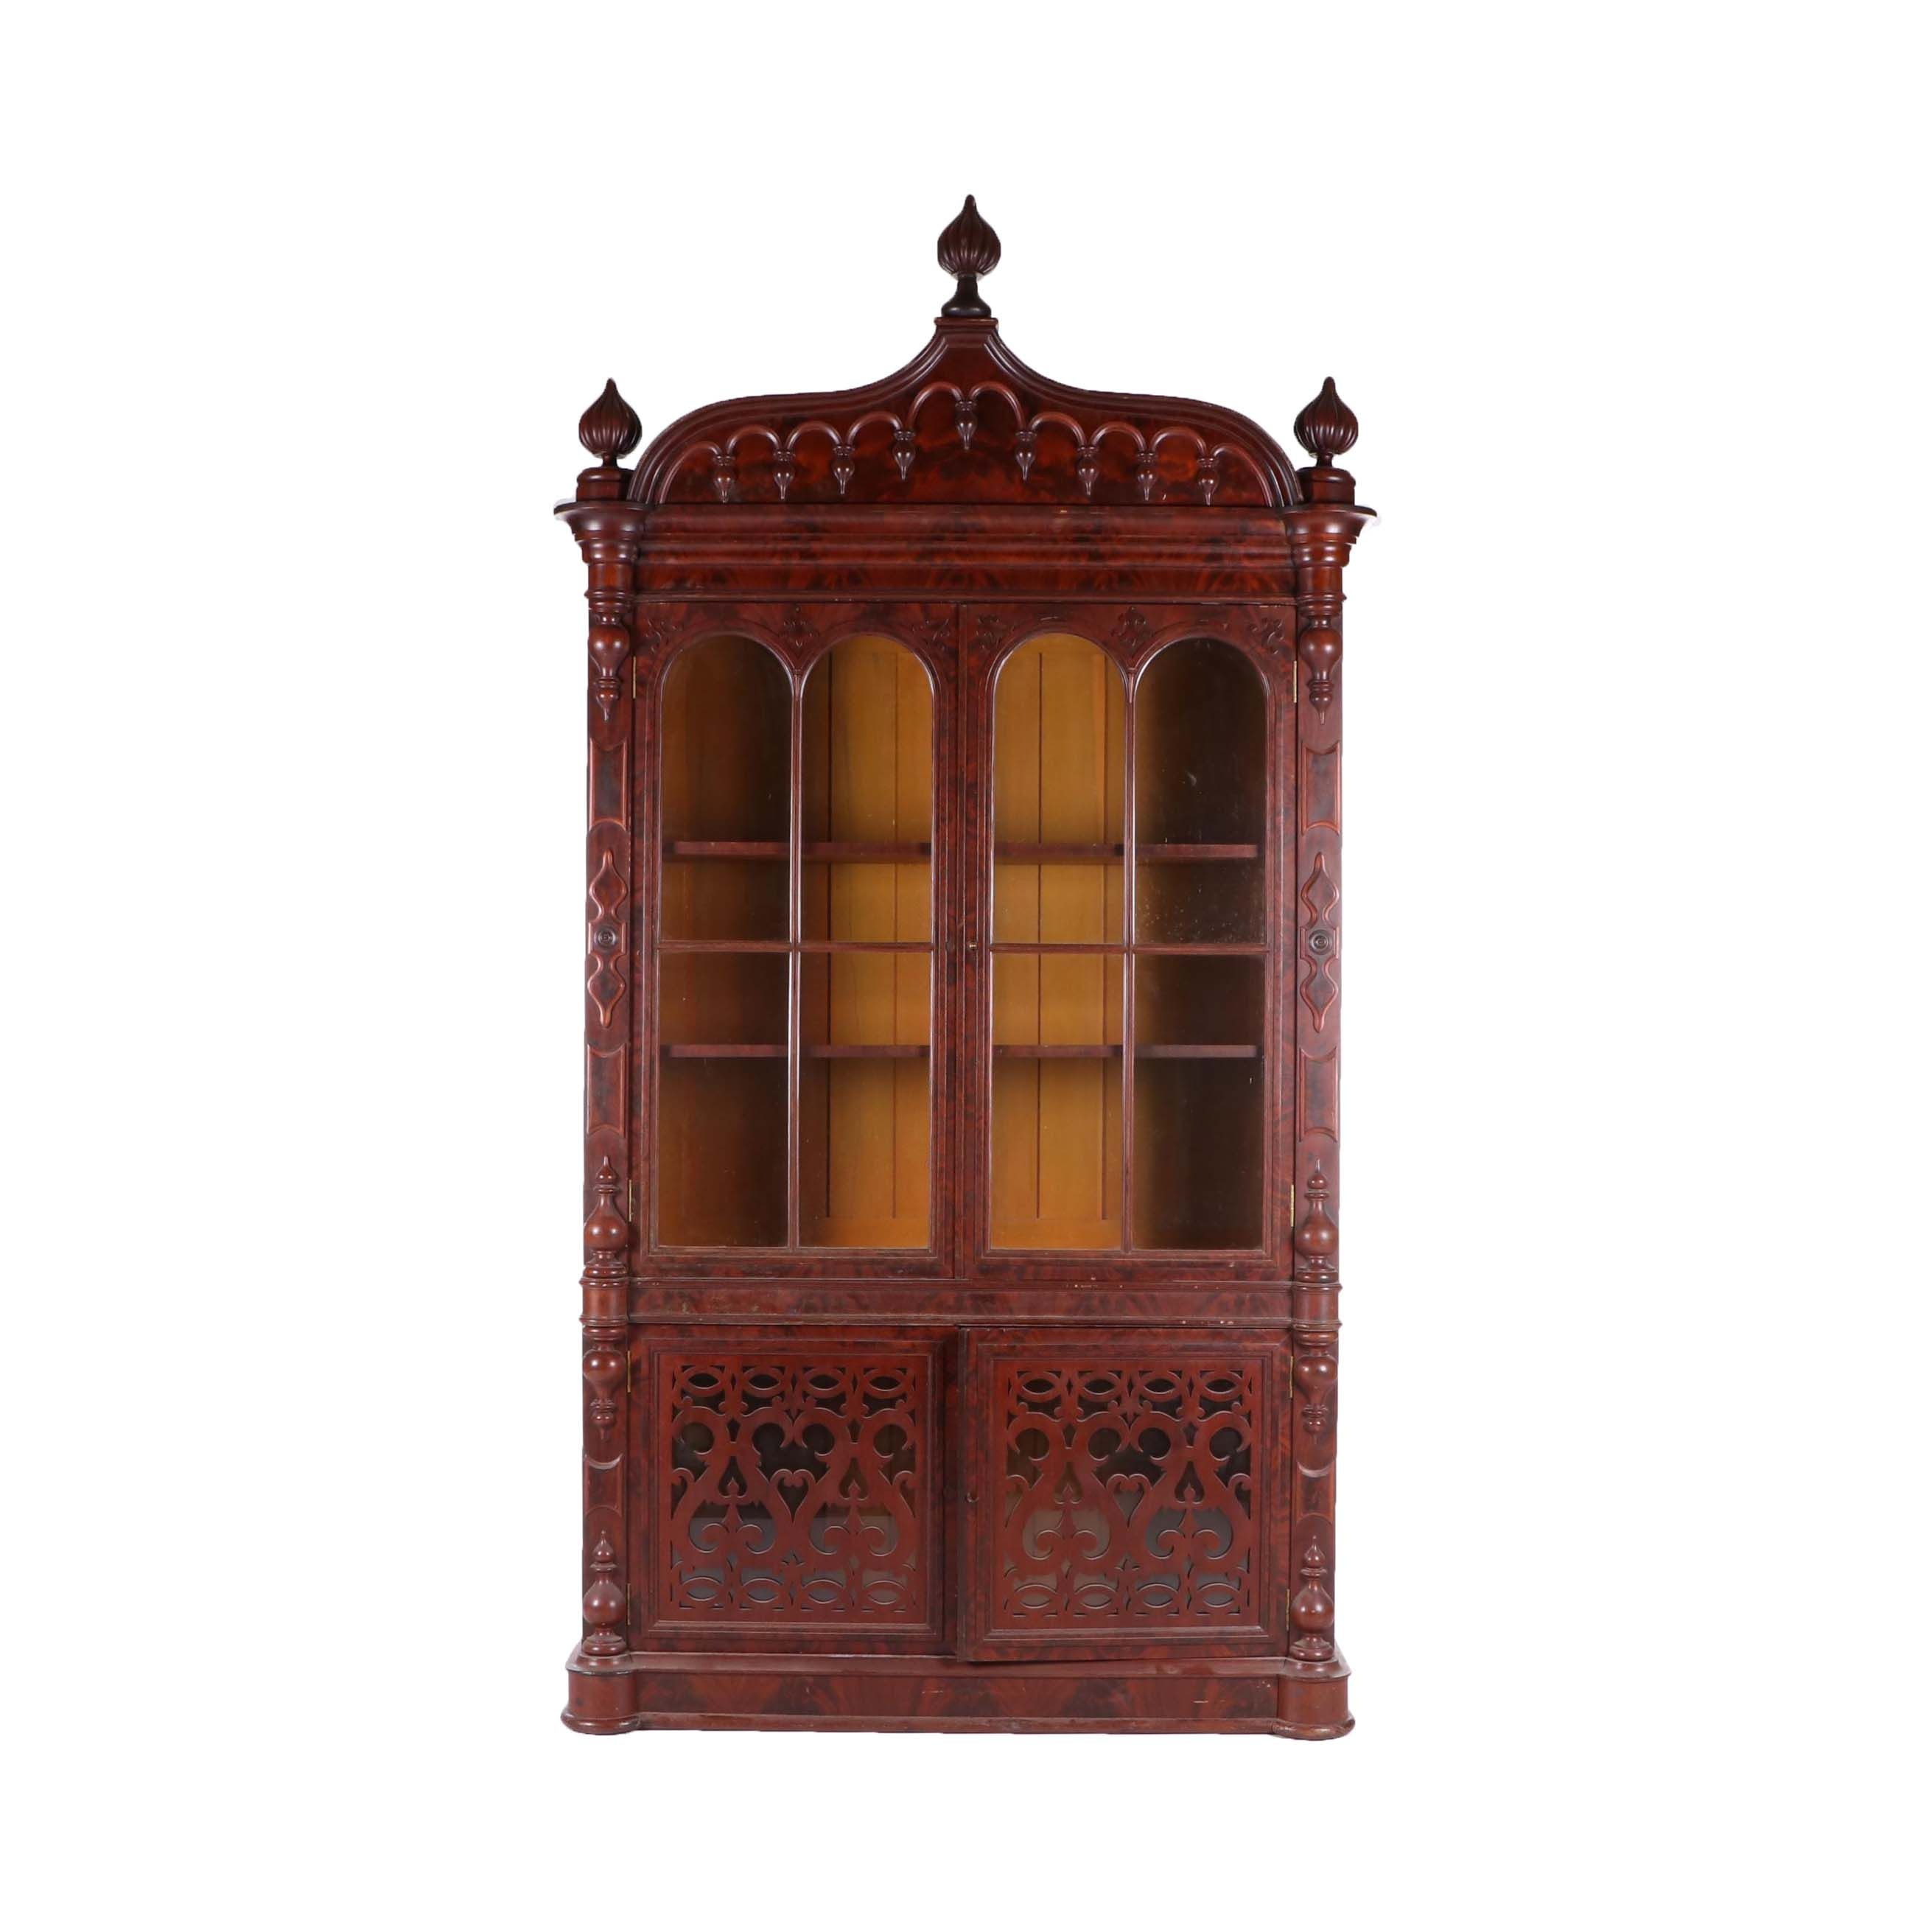 Victorian Gothic Revival Mahogany Display Cabinet, 19th Century